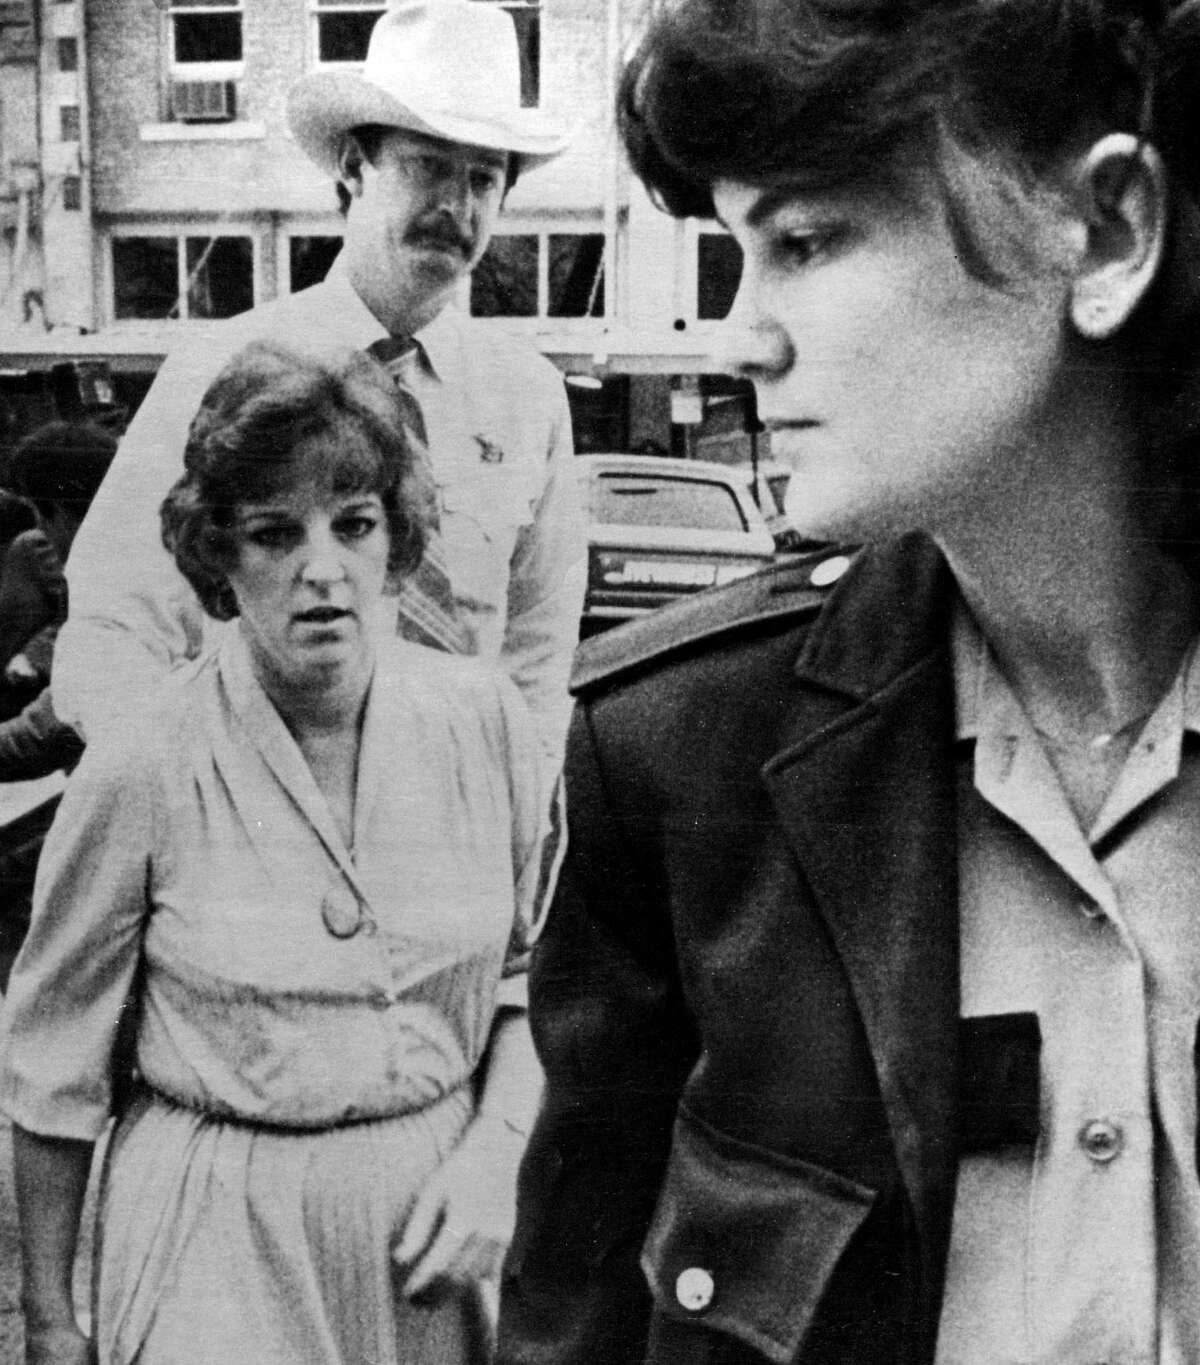 1/16/1984 Georgetown, Texas Genene Jones, 33, facing trial on a murder charge alleging she killed a 15-month -old girl with a dose of a paralyzing drug arrives at Williamson County(Texas) courthouse Monday for the start of her trial. Escorting Ms. Jones are Deputies Monica Kiepac and Jim WIlson.